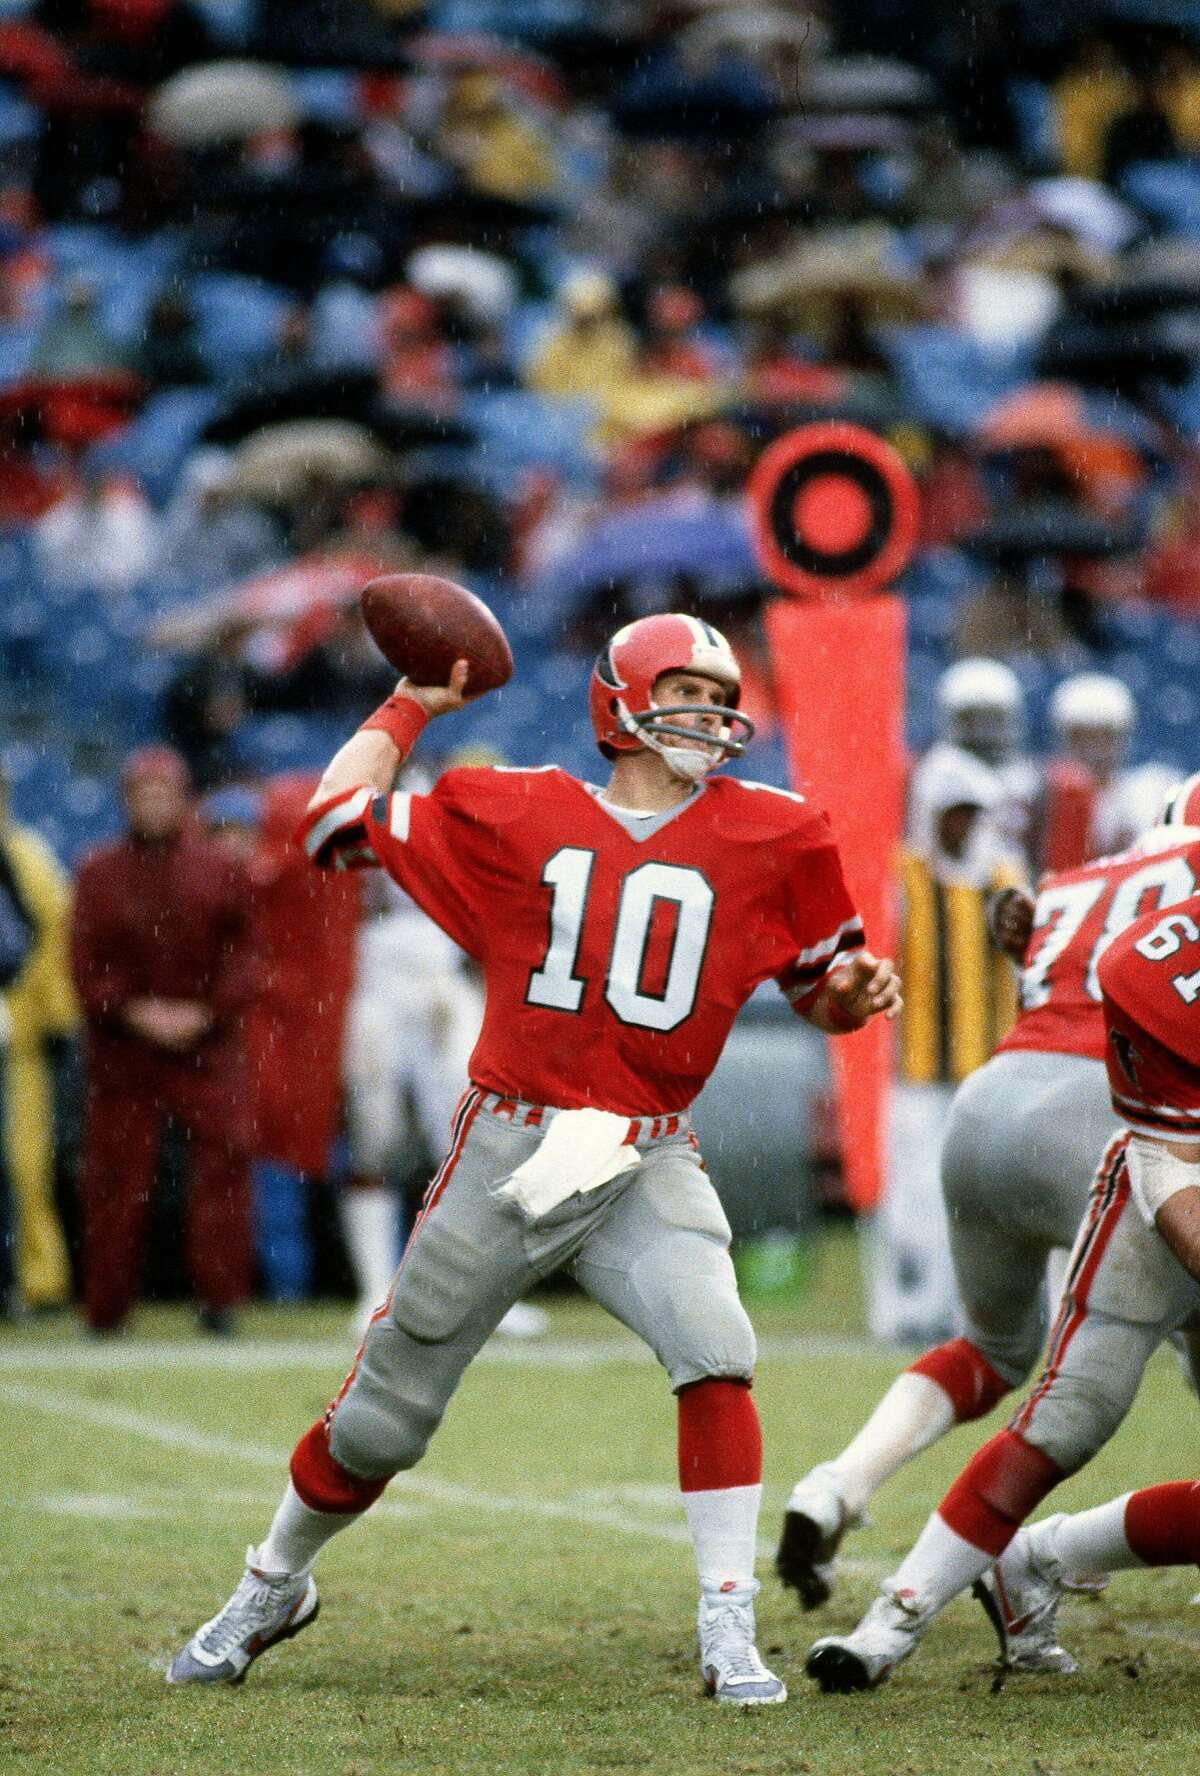 Steve Bartkowski: Emil R. Buchser High School (Santa Clara) - Class of 1971 Bartkowski started 121 games at quarterback for the Falcons from 1975-85 and was named to two Pro Bowls.